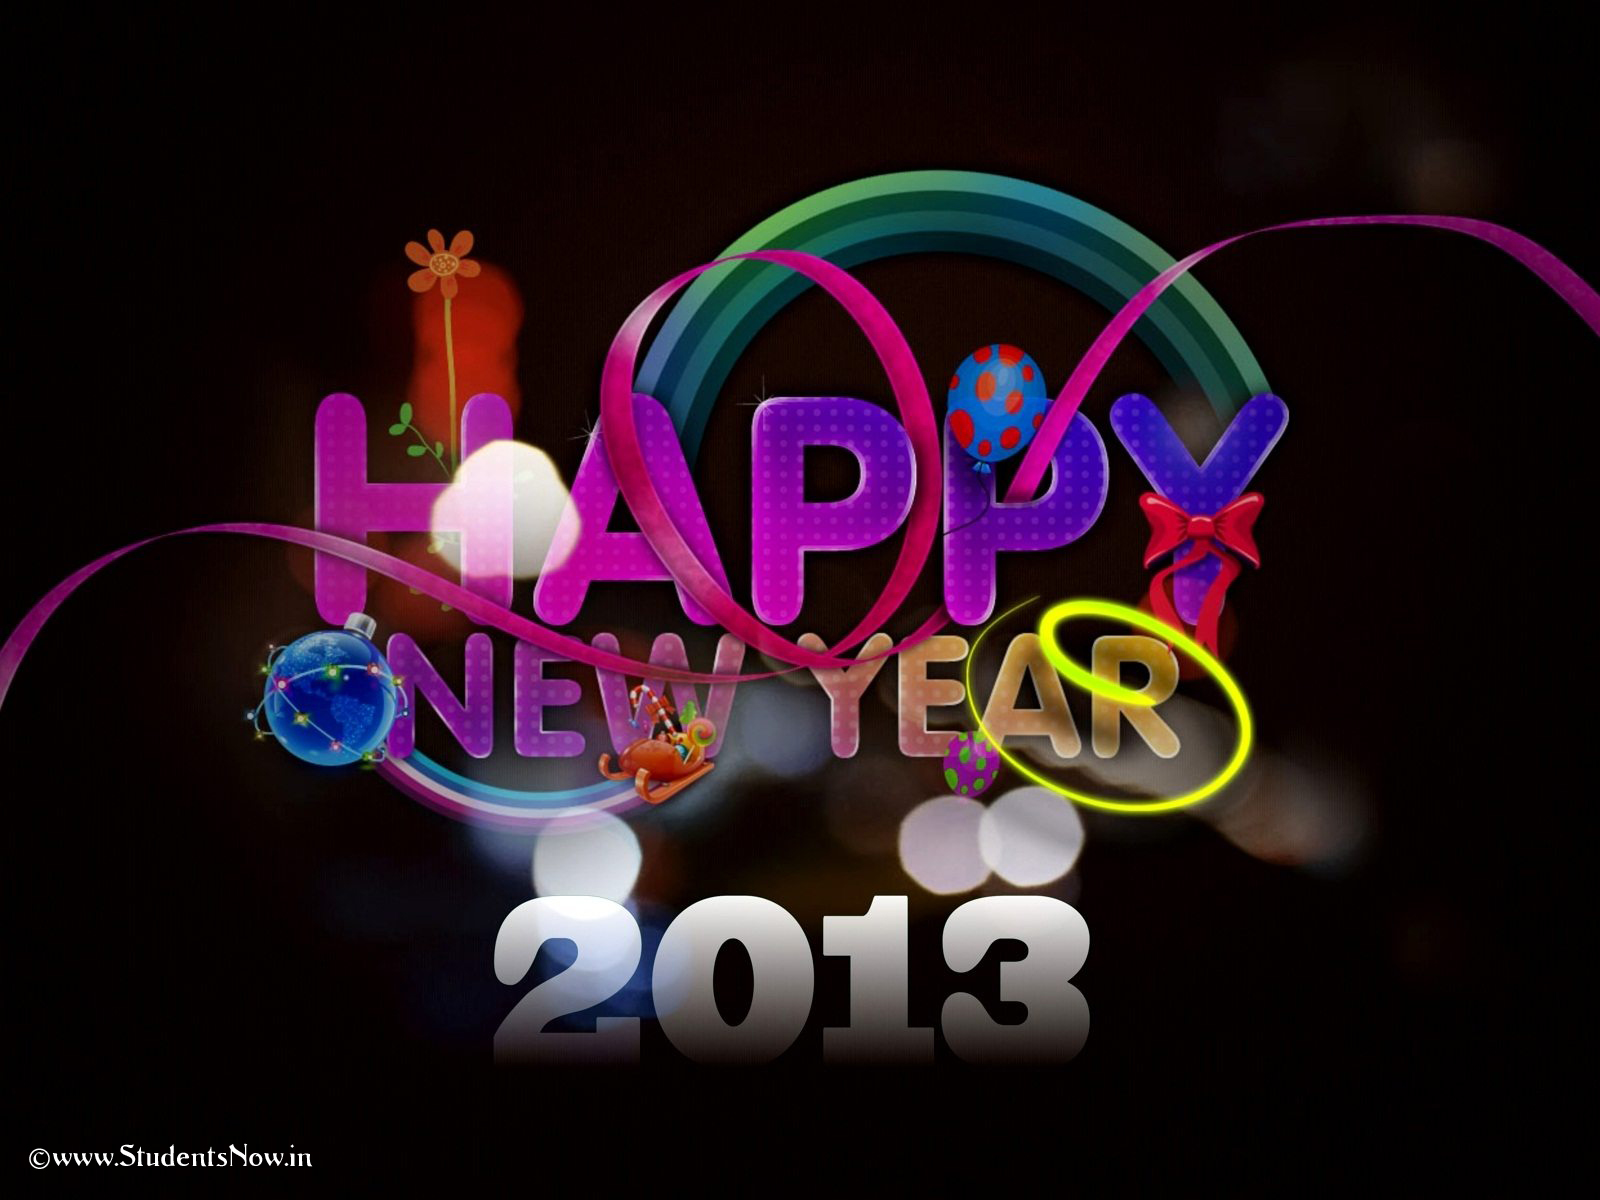 New Year  2013 Greetings  2013 New Year Wallpapers HD. 1600 x 1200.New Year Wishes For Lover Photos In Malayalam Actress